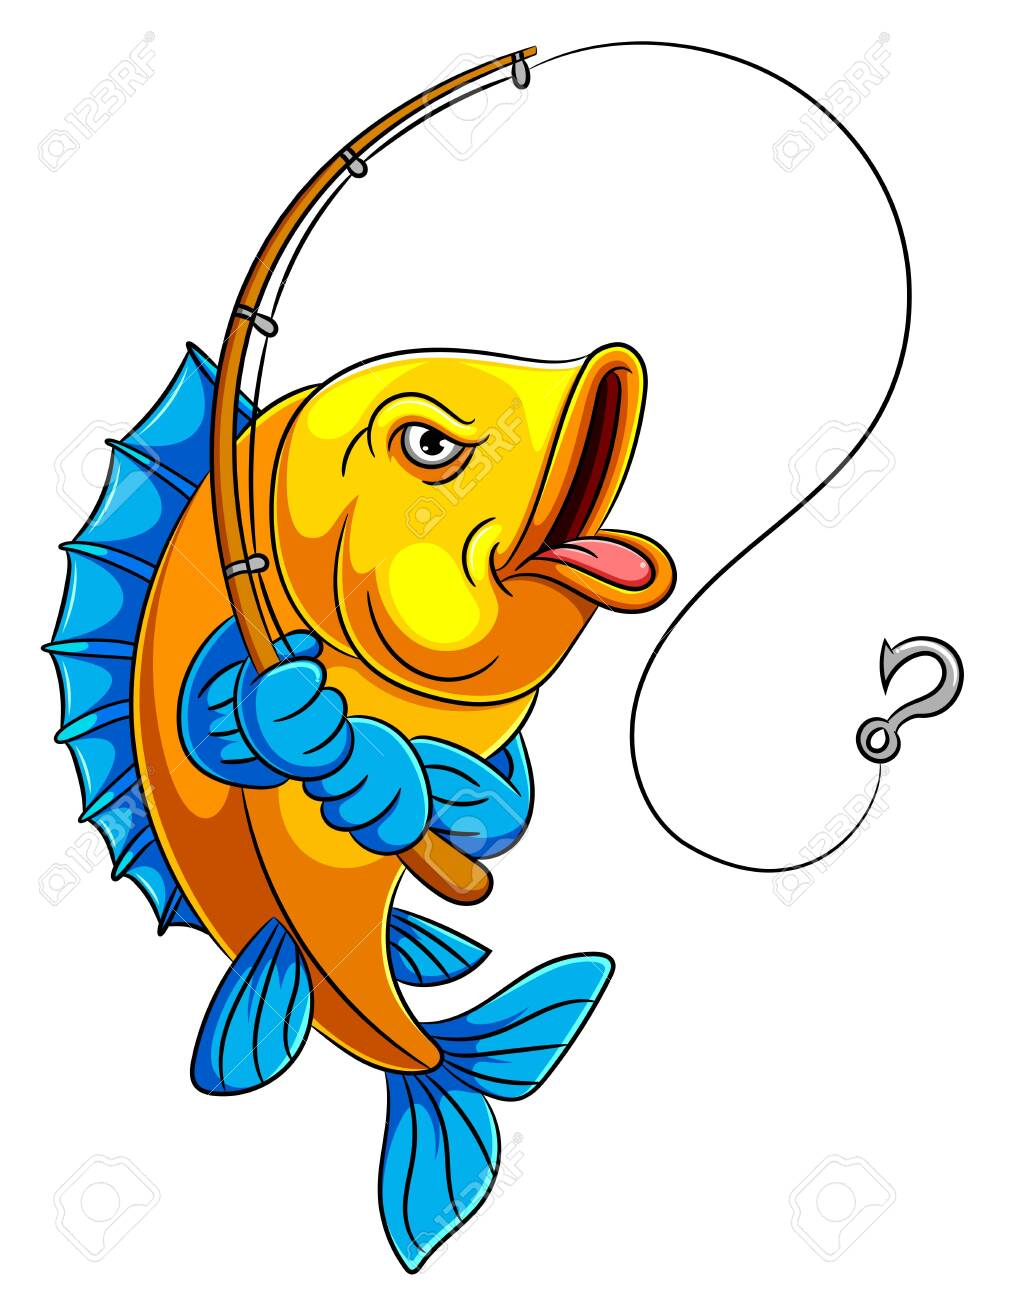 Illustration Of A Cartoon Fish Holding Fishing Rod Royalty Free Cliparts Vectors And Stock Illustration Image 128159964